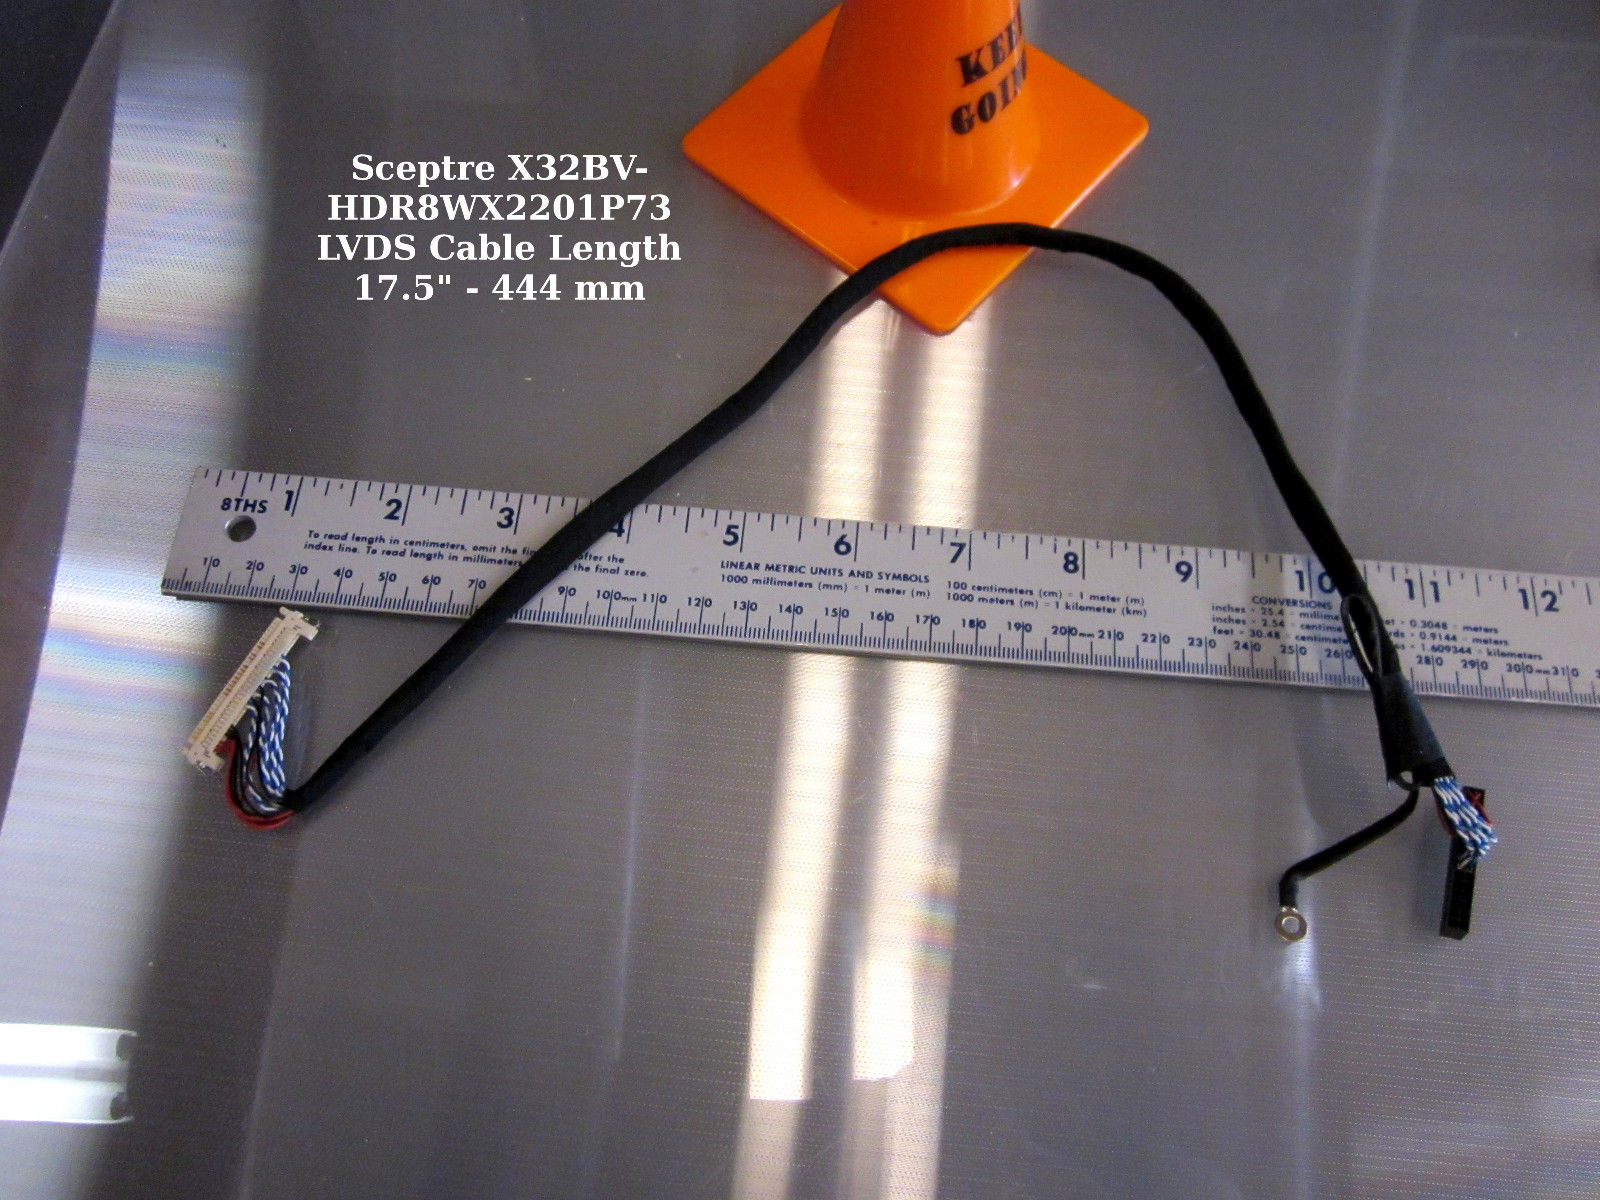 "Primary image for Sceptre X32BV-HDR8WX2201P73 LVDS Cable Length 17.5"" - 444 mm"